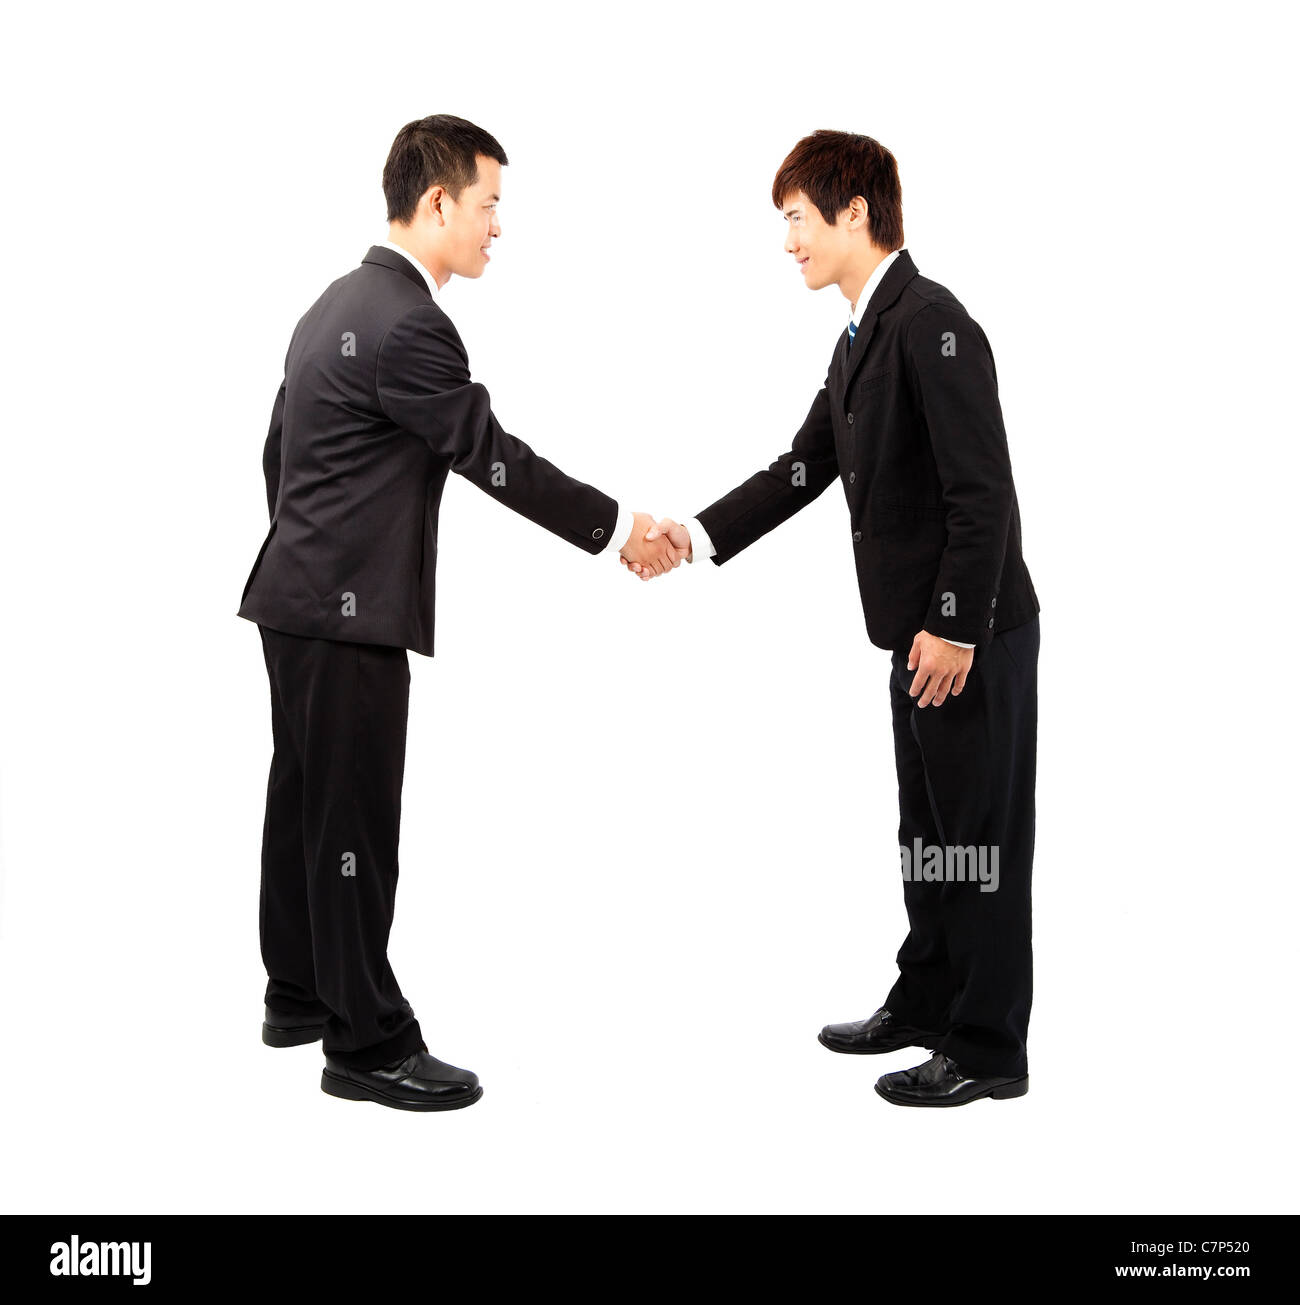 Japanese Business Person Bow Stock Photos Japanese Business Person